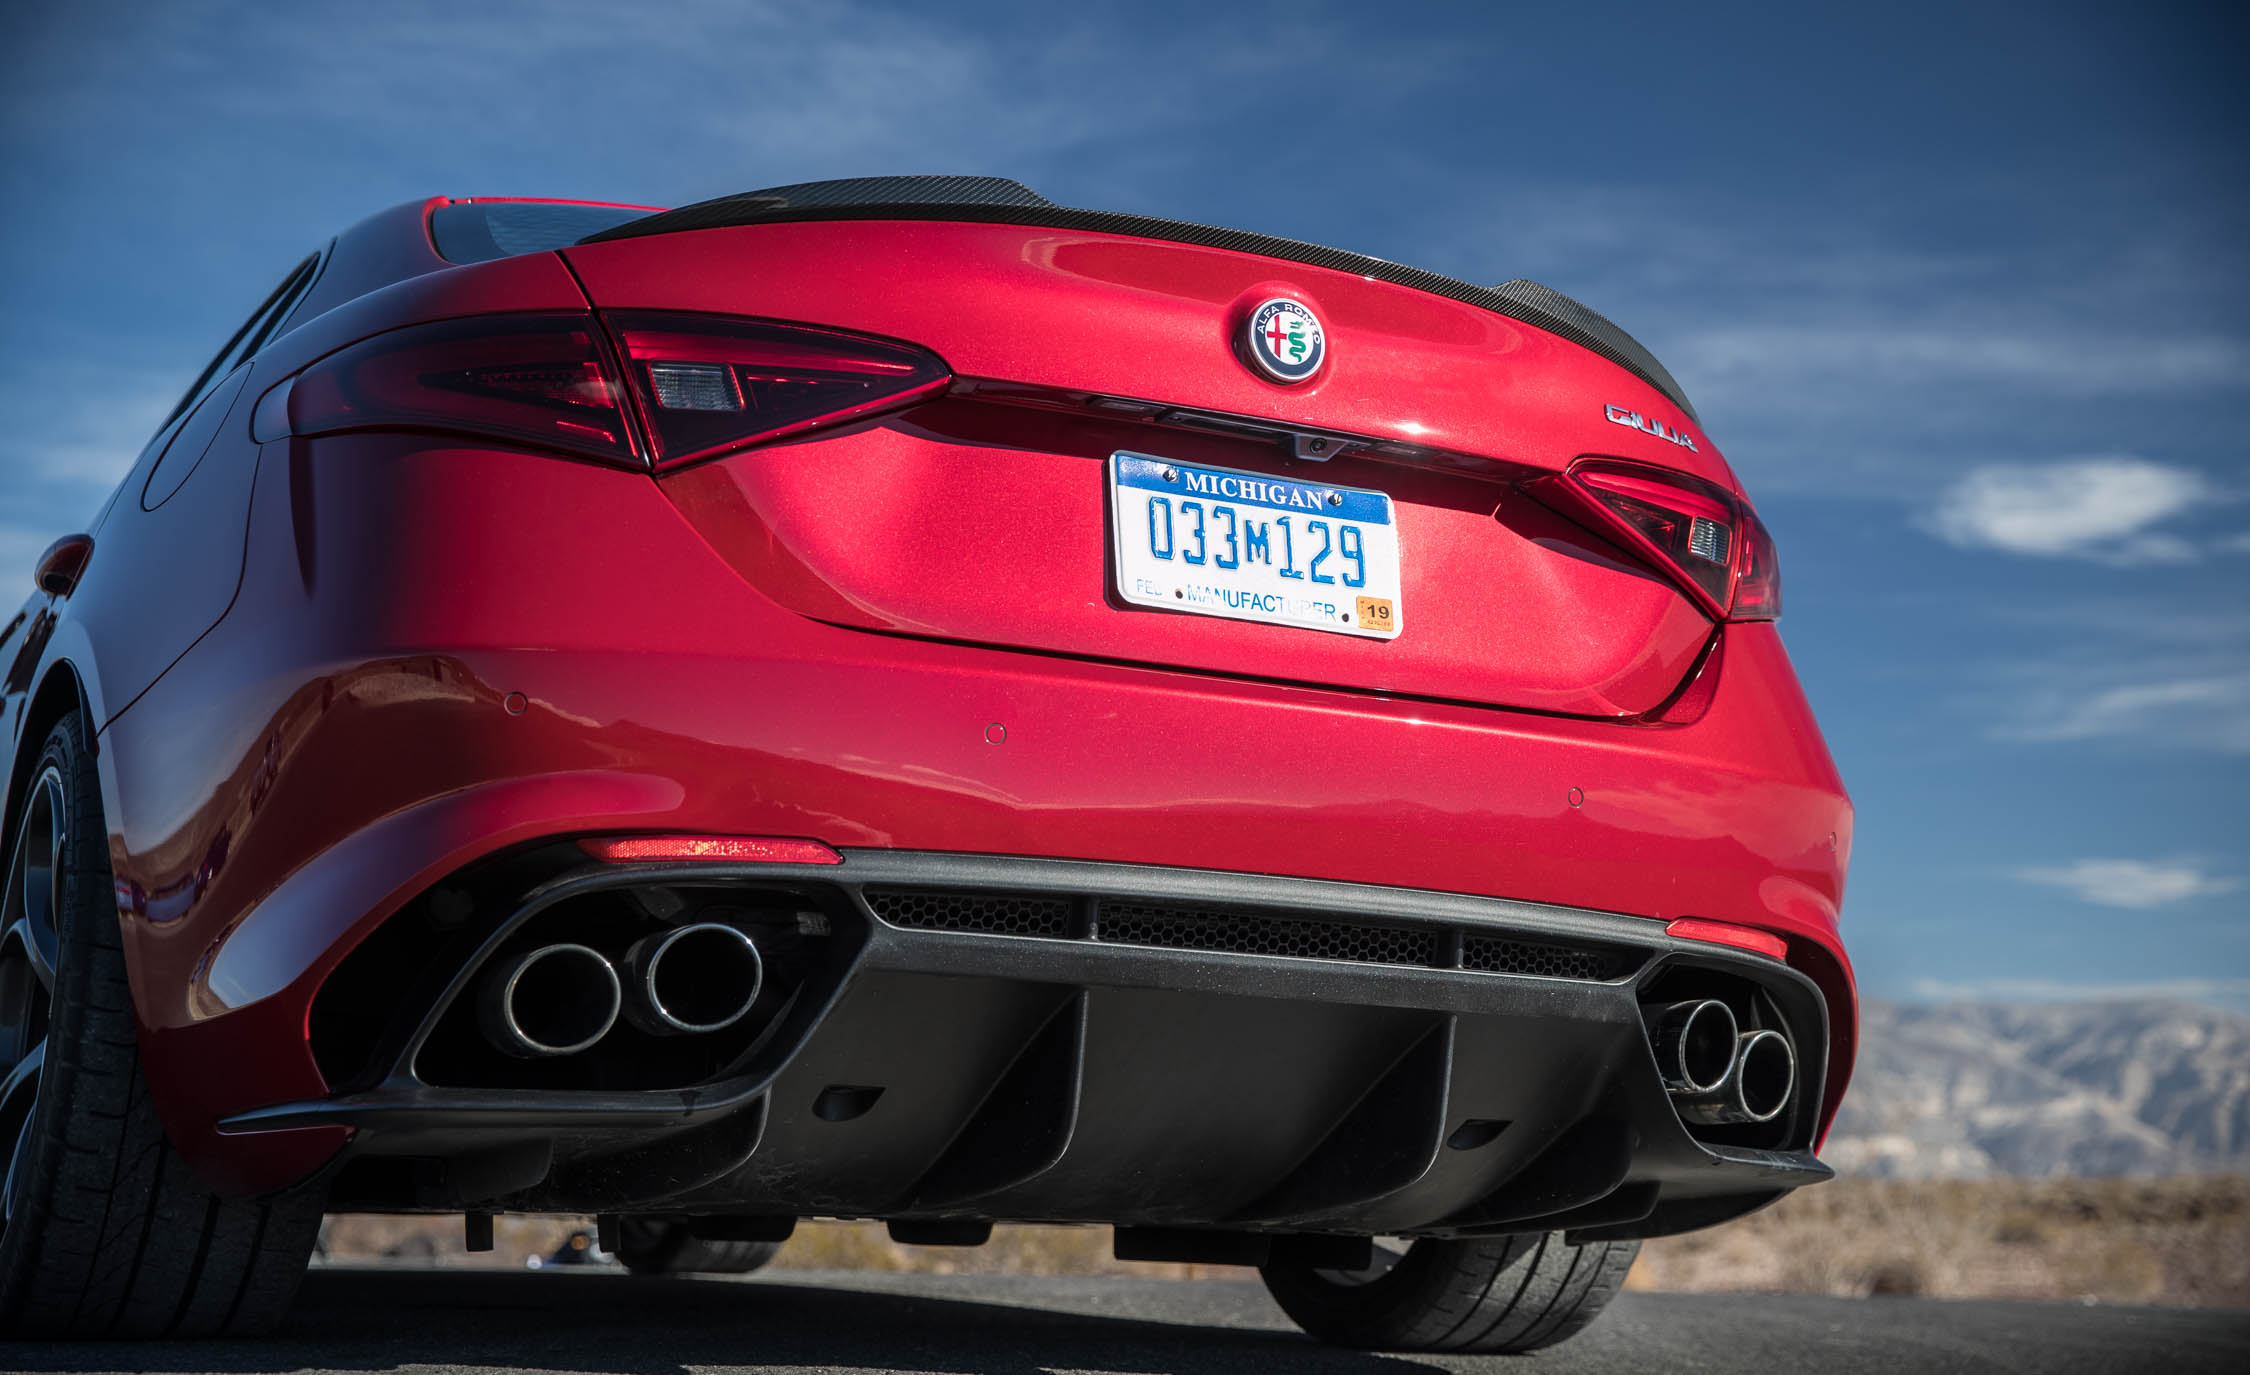 2017 Alfa Romeo Giulia Quadrifoglio Cars Exclusive Videos And Rear End Photo 7 Of 29